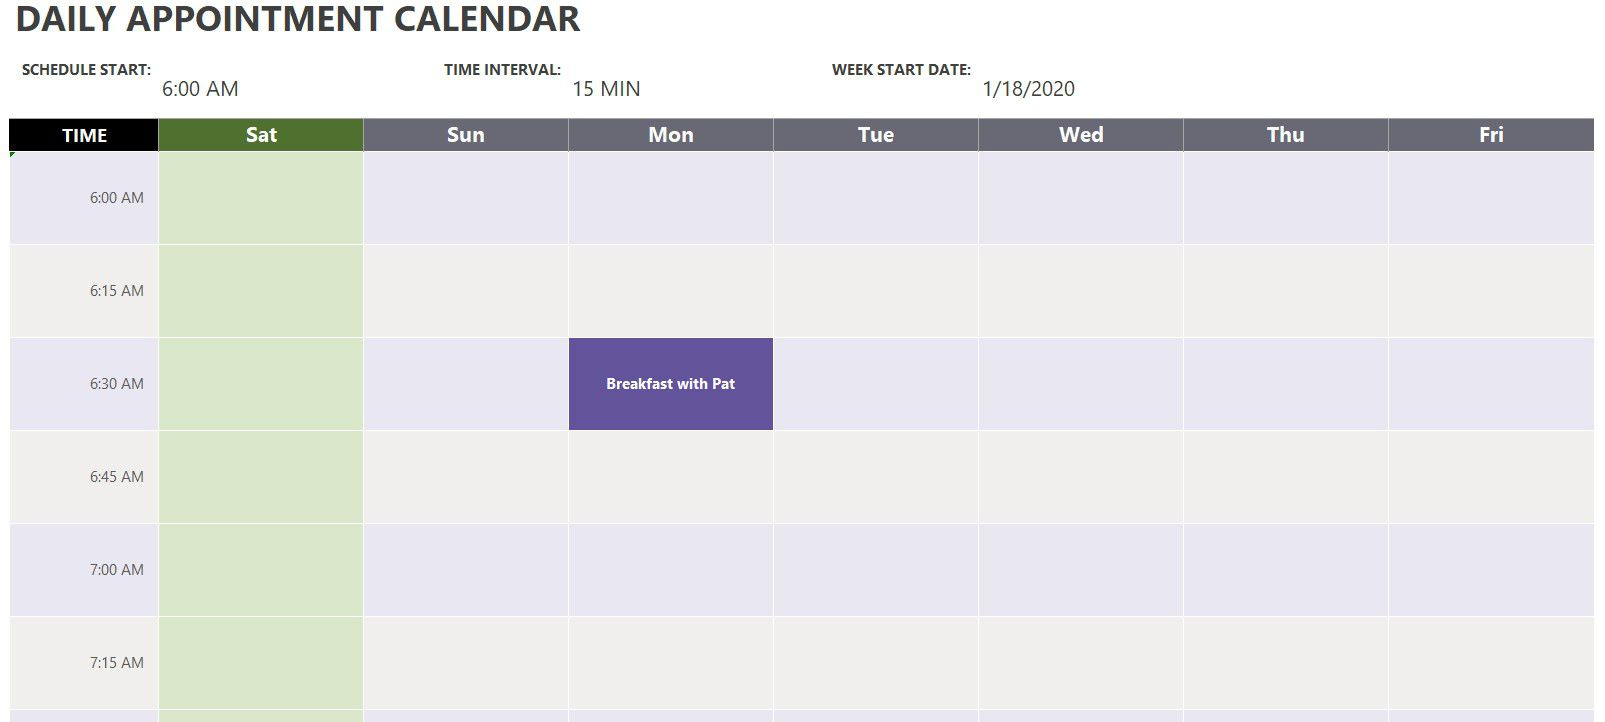 002 Awful Daily Calendar Template Excel Highest Clarity Full